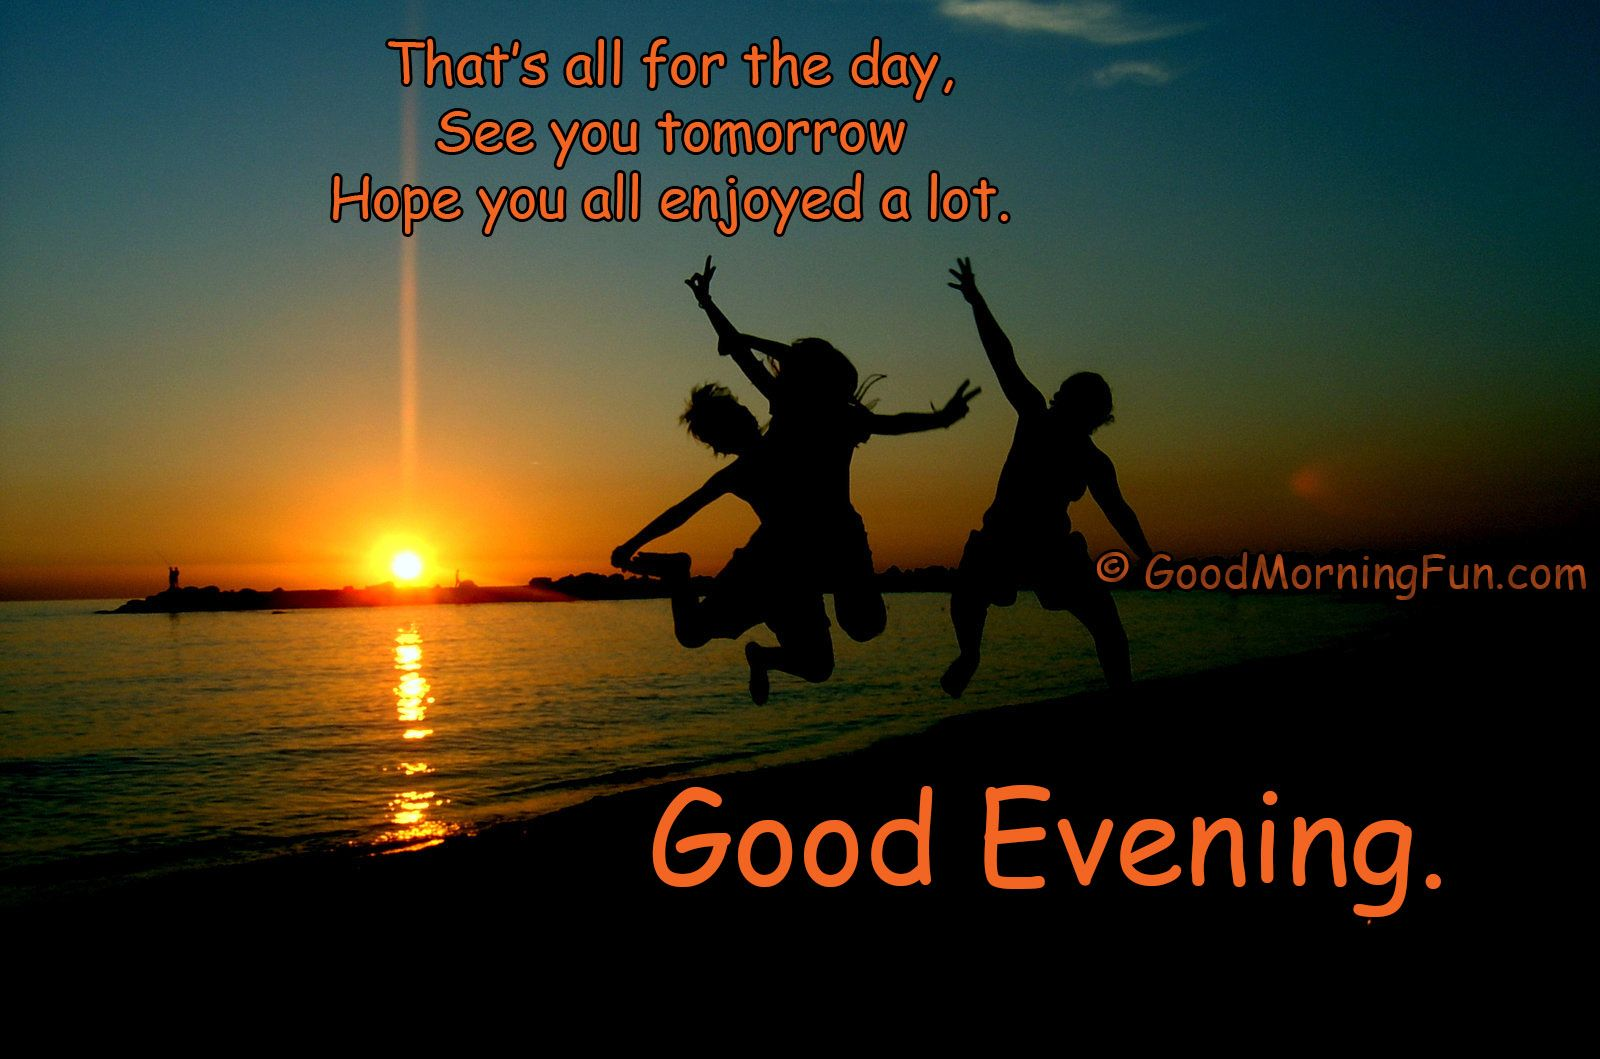 Best Funny Good Evening Wish For Friends Good Evening